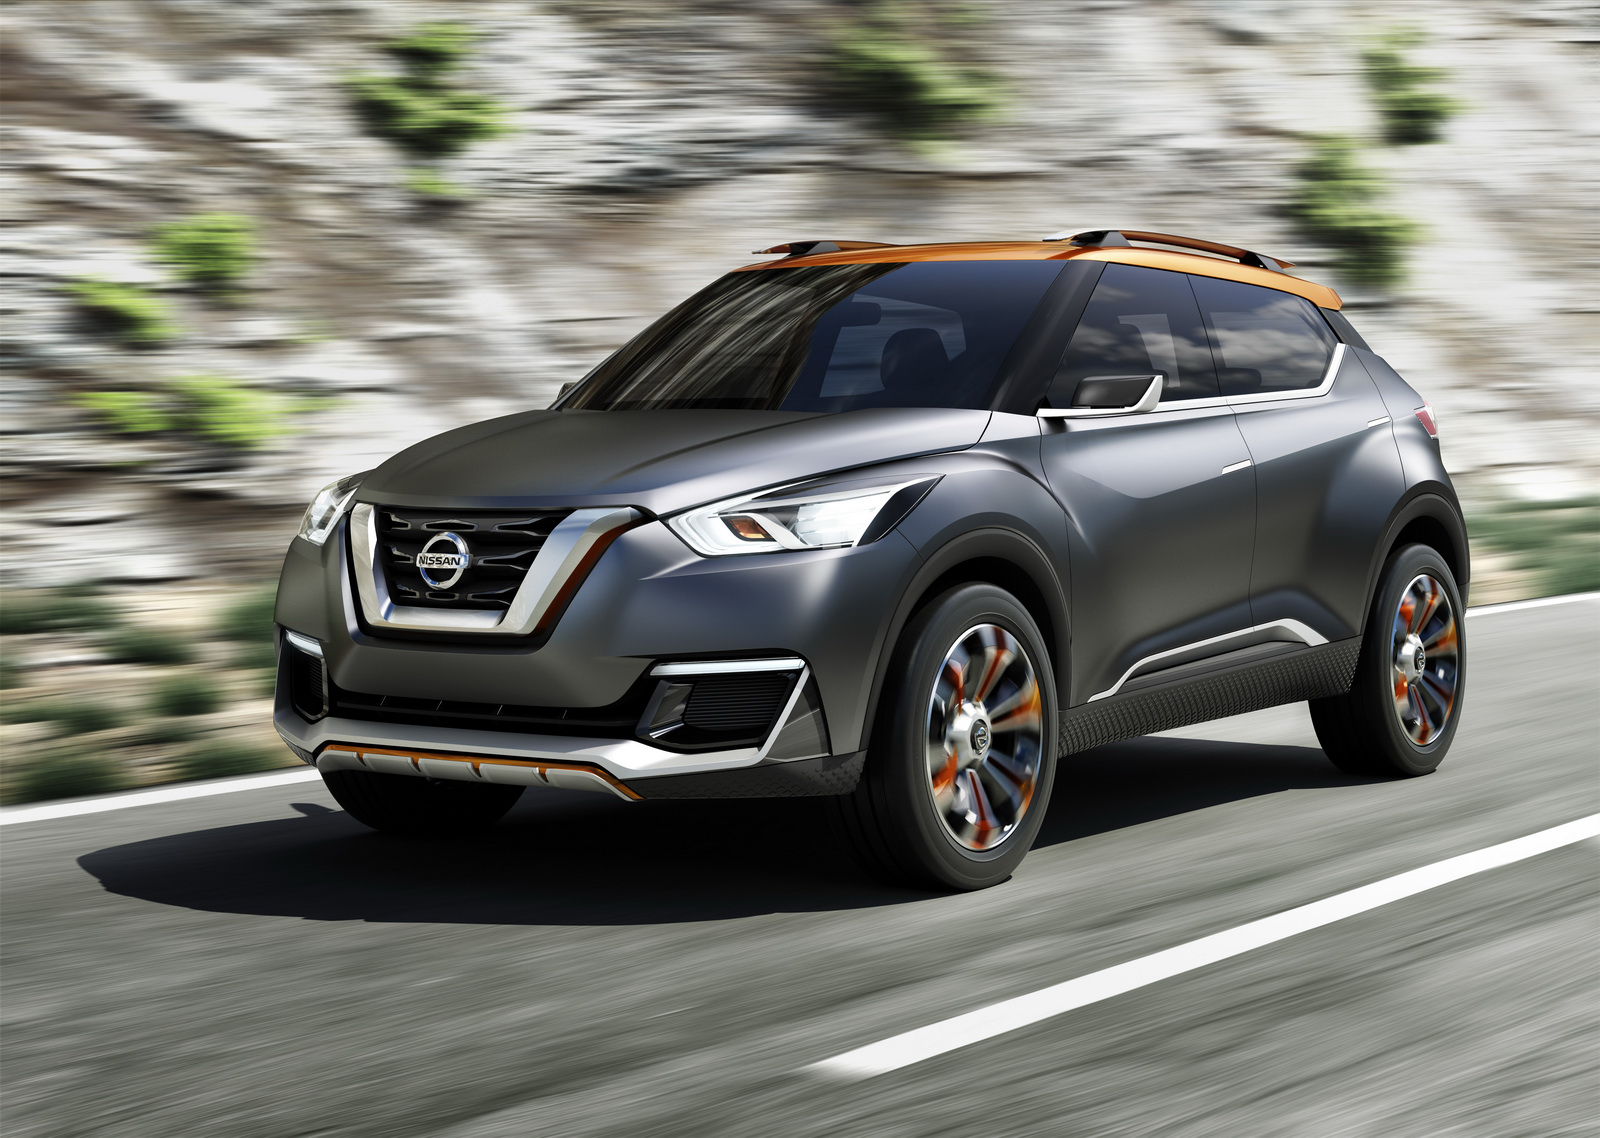 nissan kicks suv to debut in 2016 as the official car of the olympics in rio de janeiro. Black Bedroom Furniture Sets. Home Design Ideas